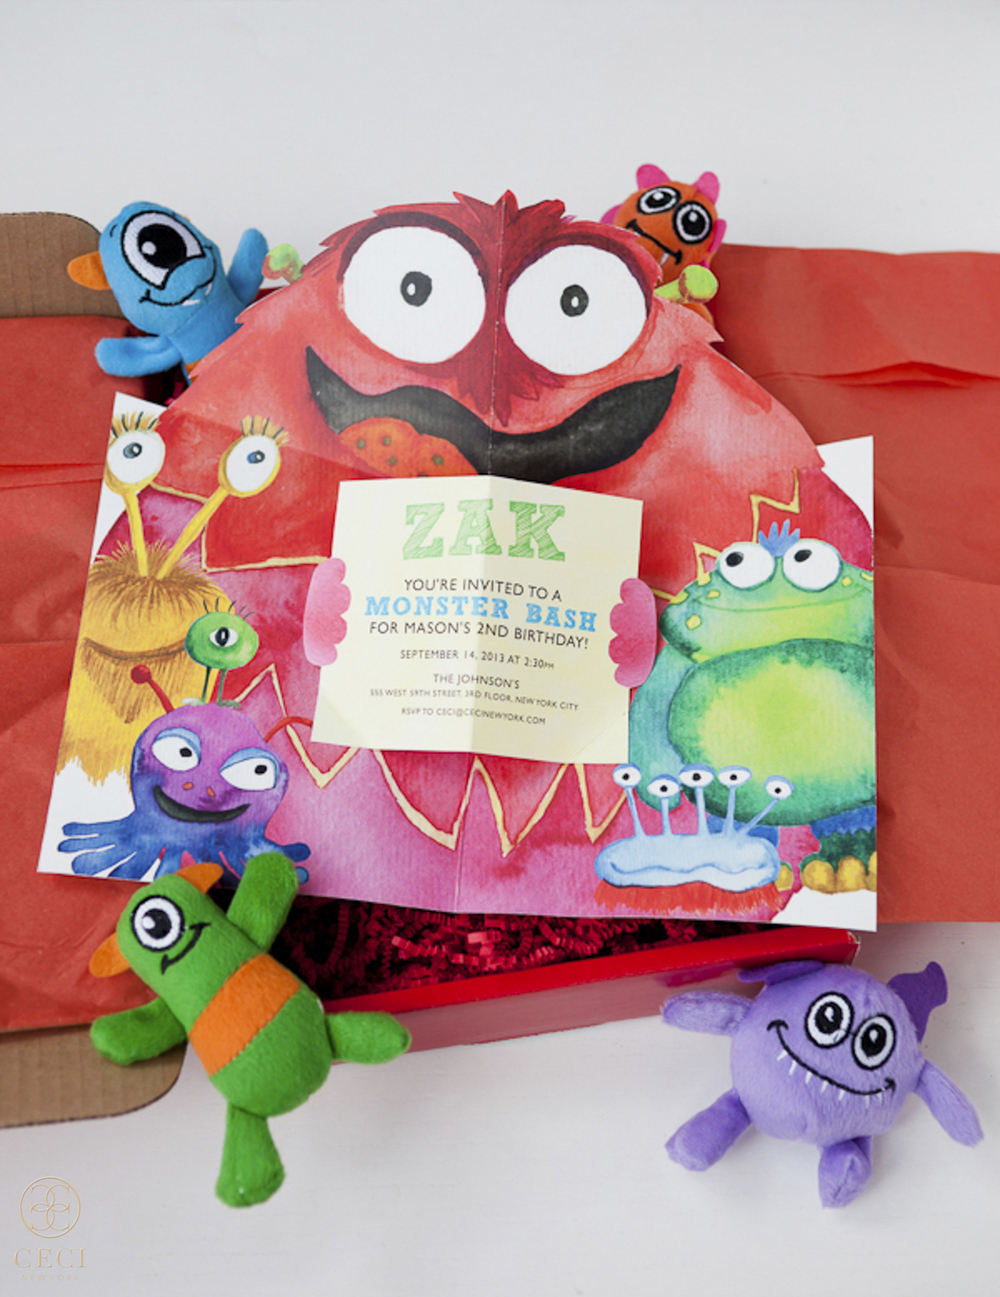 ceci-johnson-mason-birthday-party-2-second-new-york-city-monster-party-theme-kids-cute-creative-characters-4.jpg